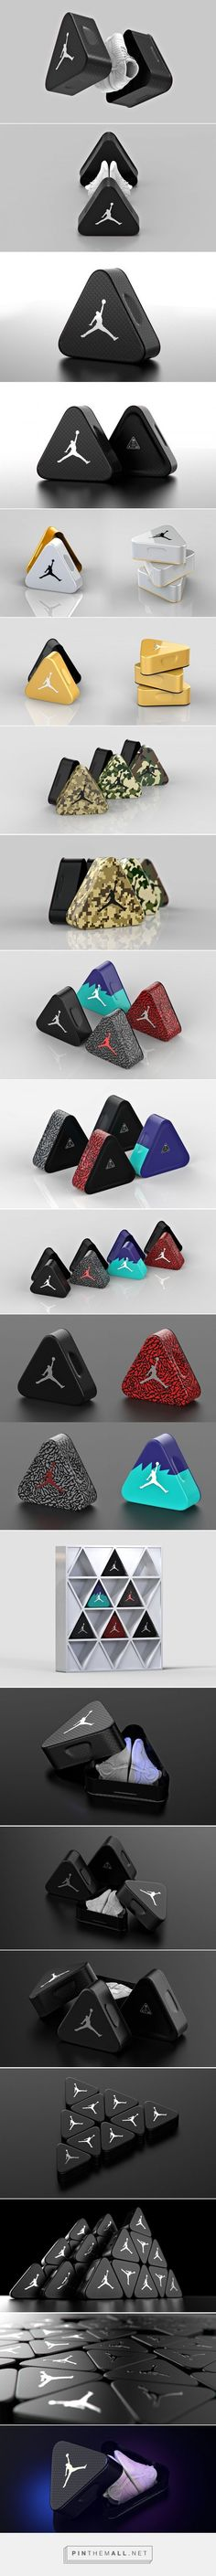 Air Jordan Triangle Shoe box concept packaging by Tomislav Zvonaric - http://www.packagingoftheworld.com/2017/06/air-jordan-triangle-aluminum-shoebox.html: